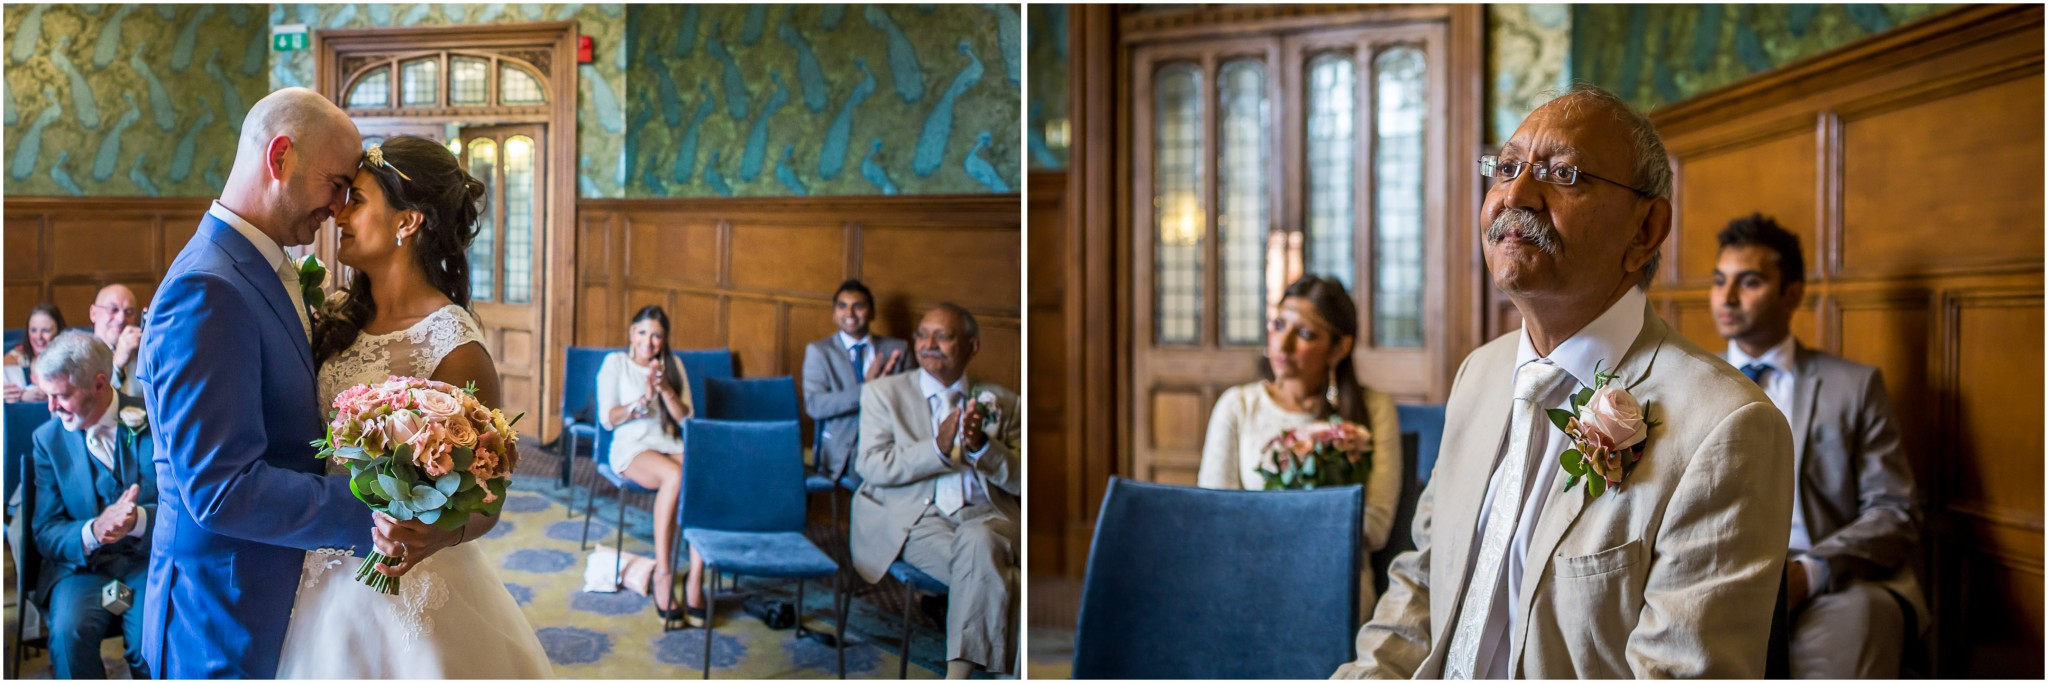 winchester-basing-room-wedding-photography-019